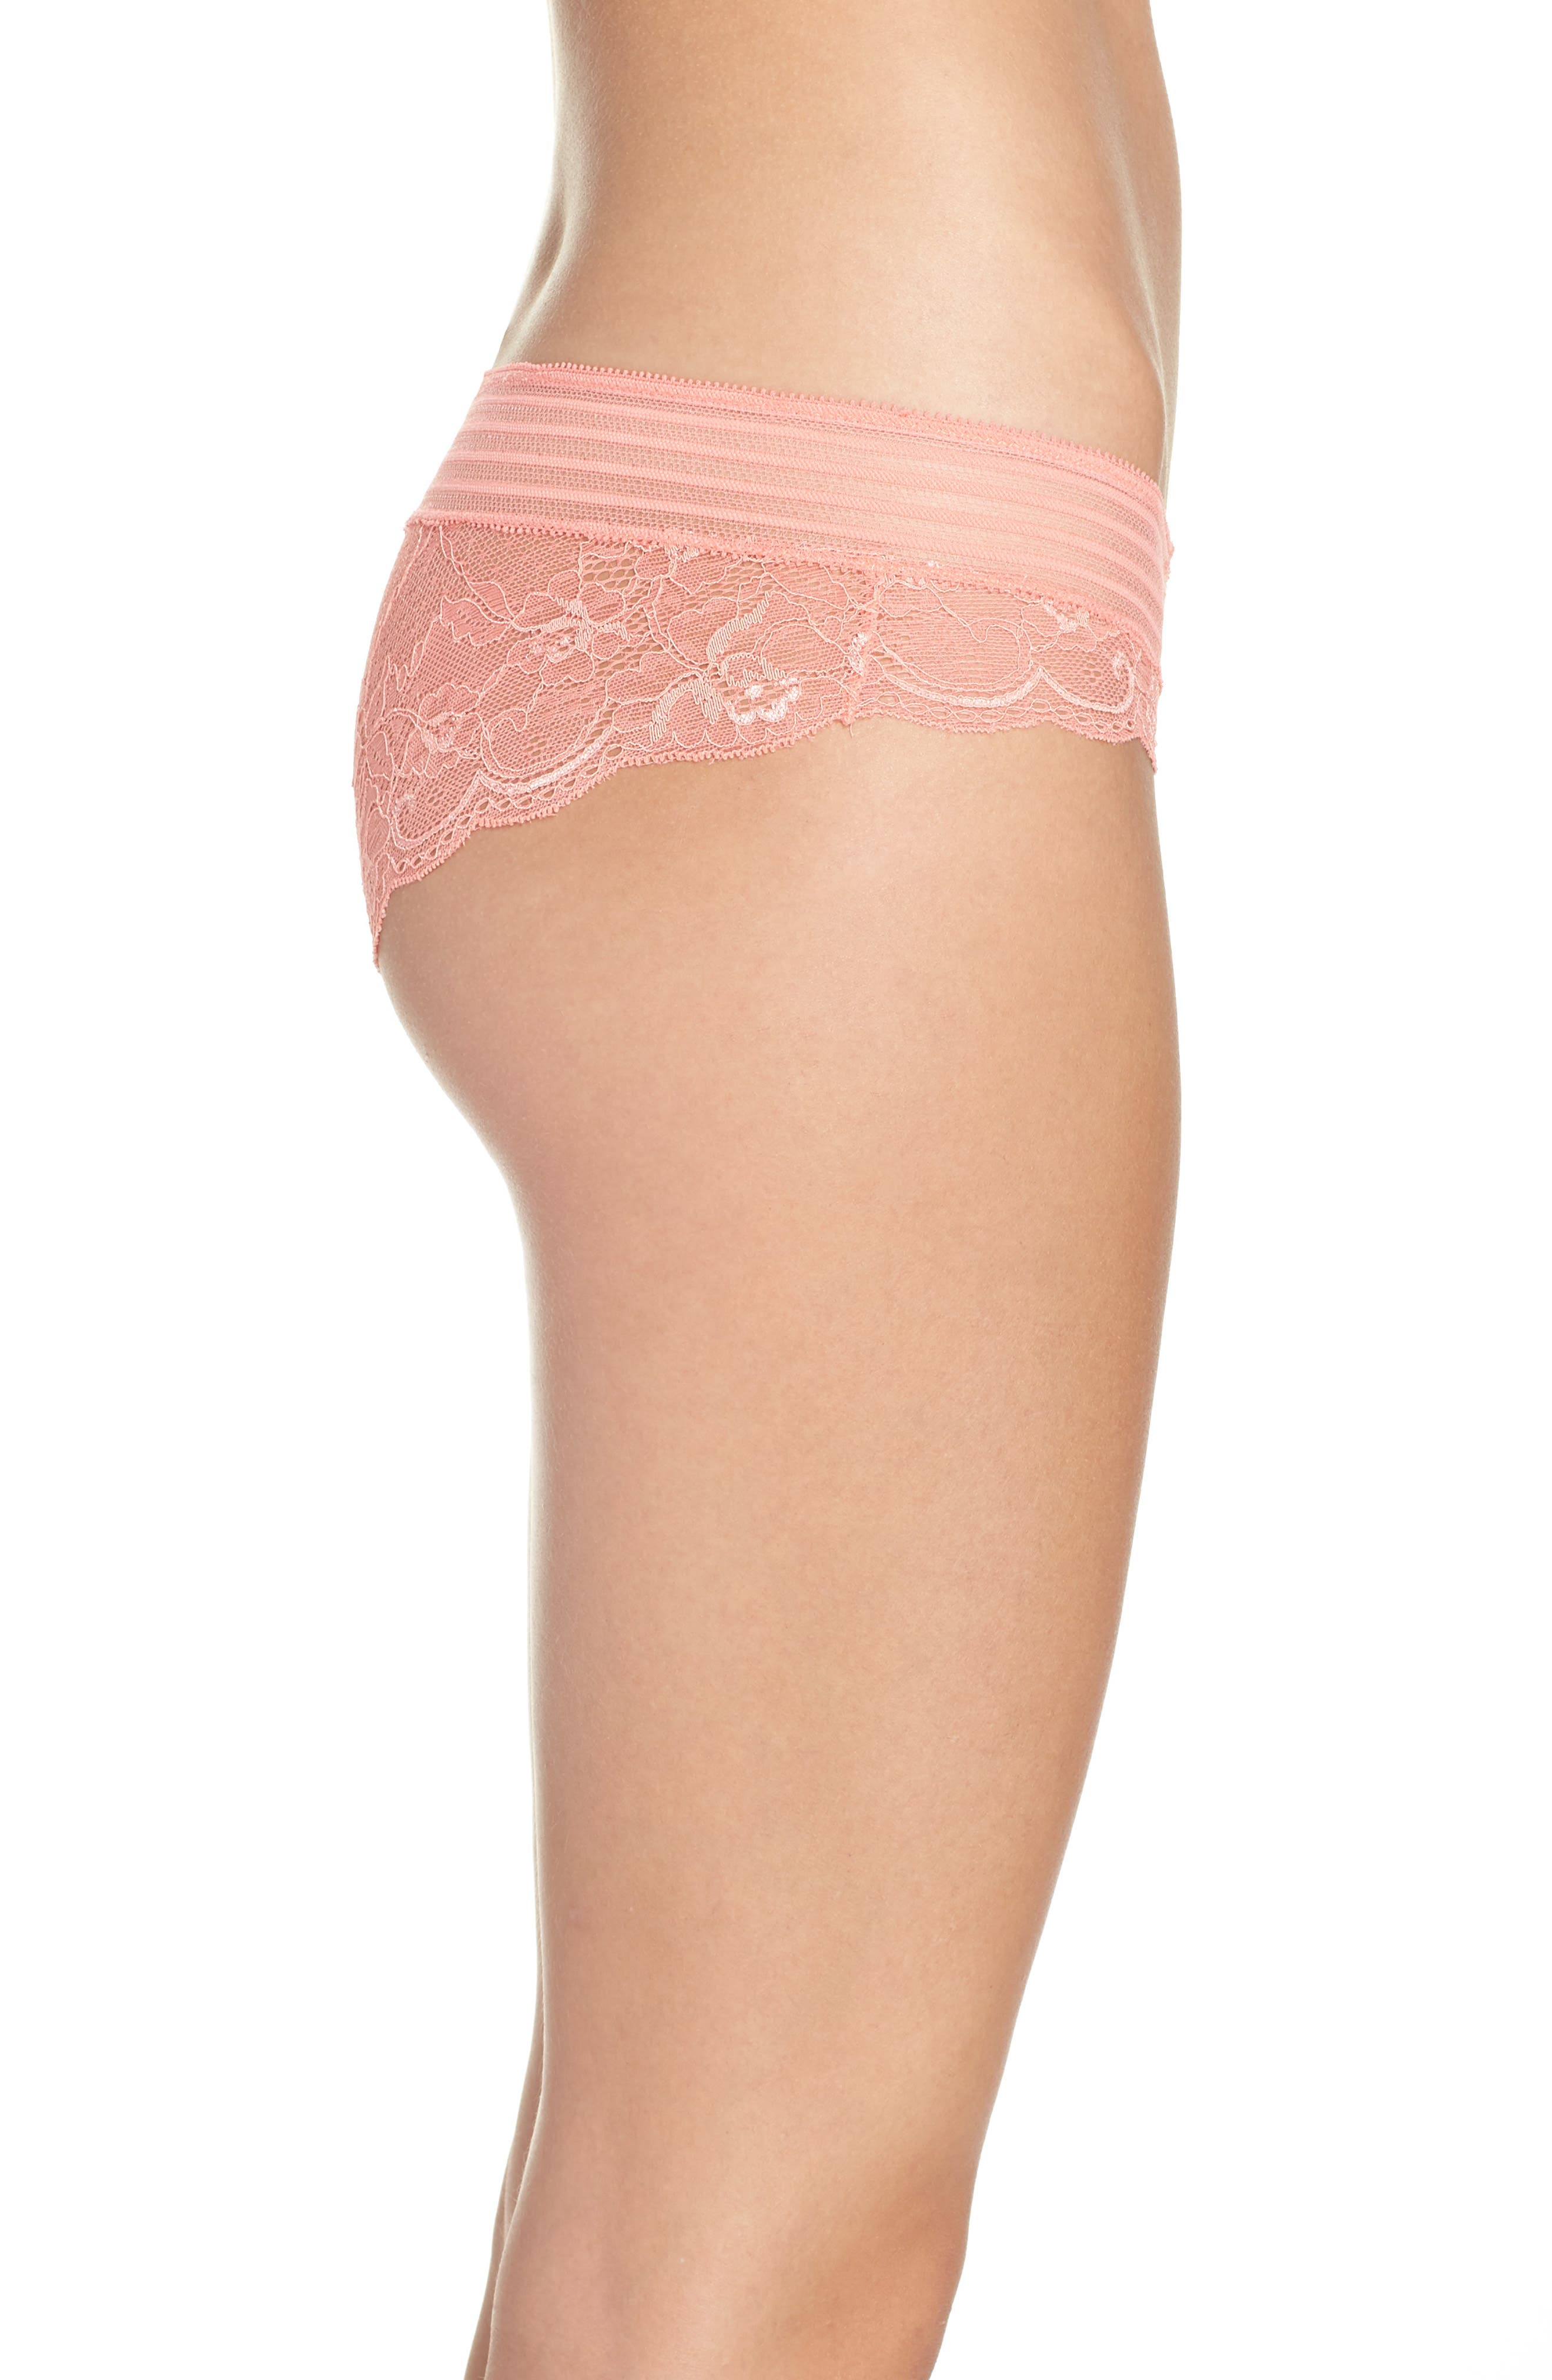 Lace Hipster Panties,                             Alternate thumbnail 18, color,